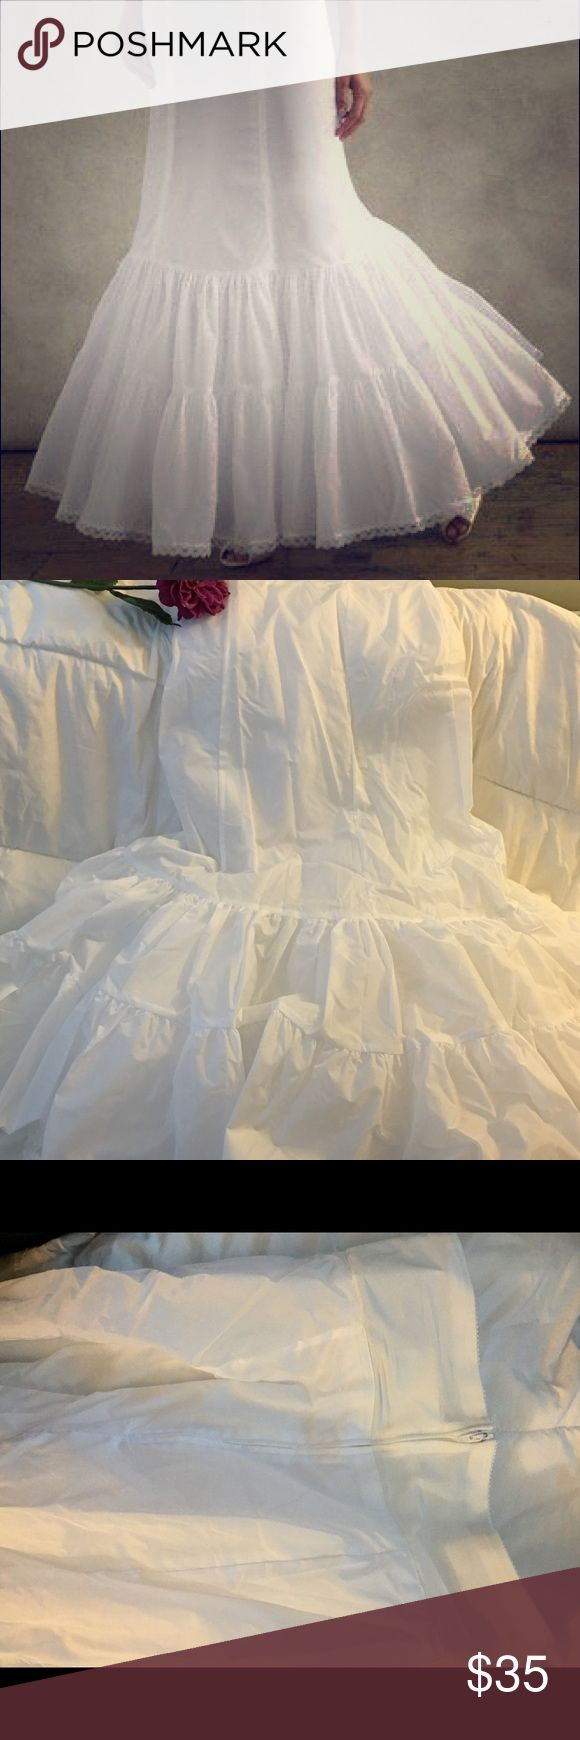 Davids bridal Fit and Flare Slip Size 14 Fit and Flare Wedding dress slip size 14, but in reality fits a 10/12, my dress was a size 12! Worn once on my wedding day 👰🏻. In perfect condition, Stored in garment bag!  Enhance your shape with this flattering fit and flare slip. The 2-tiered silhouette features a zip up power net waist for a slimming look. A beautifully lace-trimmed bottom creates fullness to accentuate mermaid and trumpet gowns. Nylon Hand wash Imported Runs small; order one…